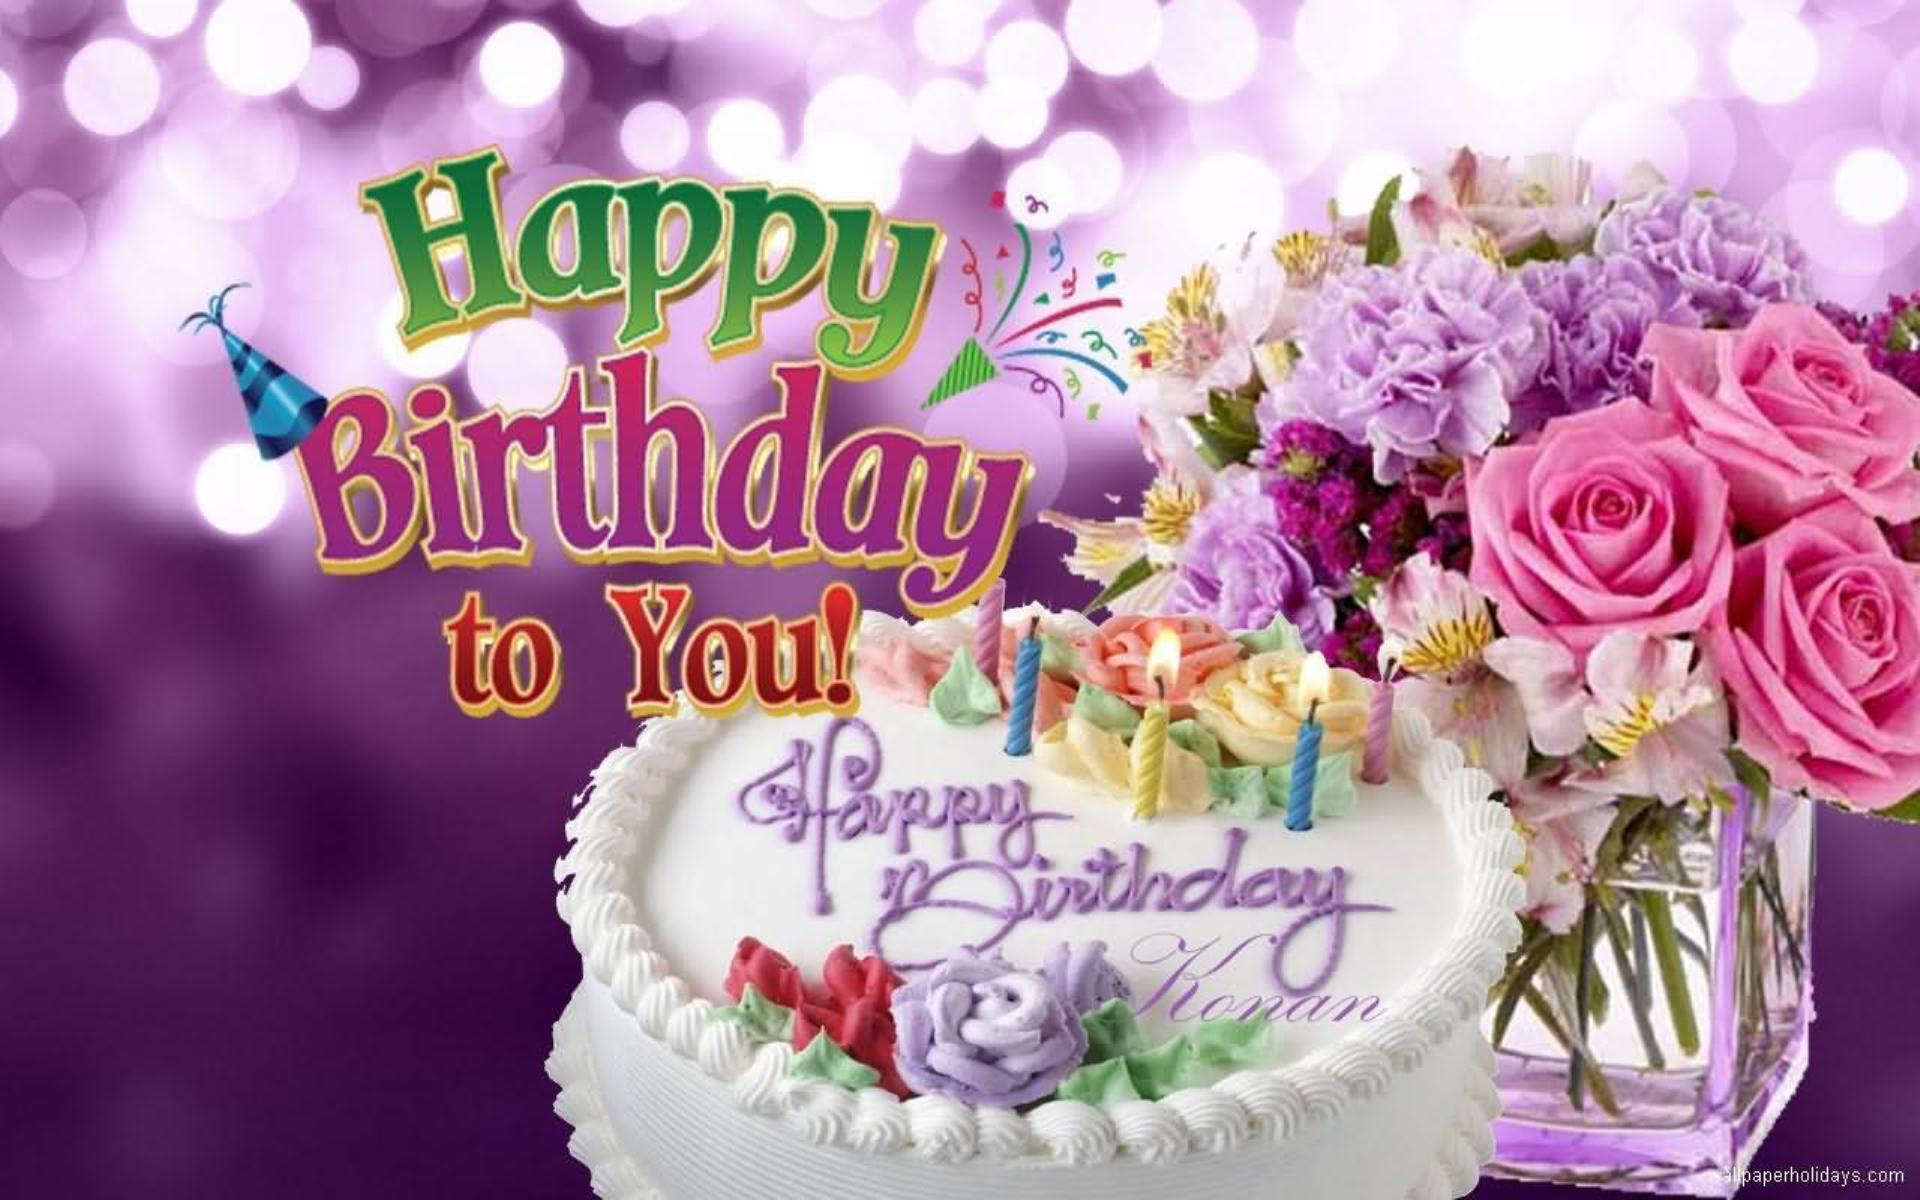 Happy birthday free wallpapers wallpaper cave - Zedge happy birthday wallpapers ...